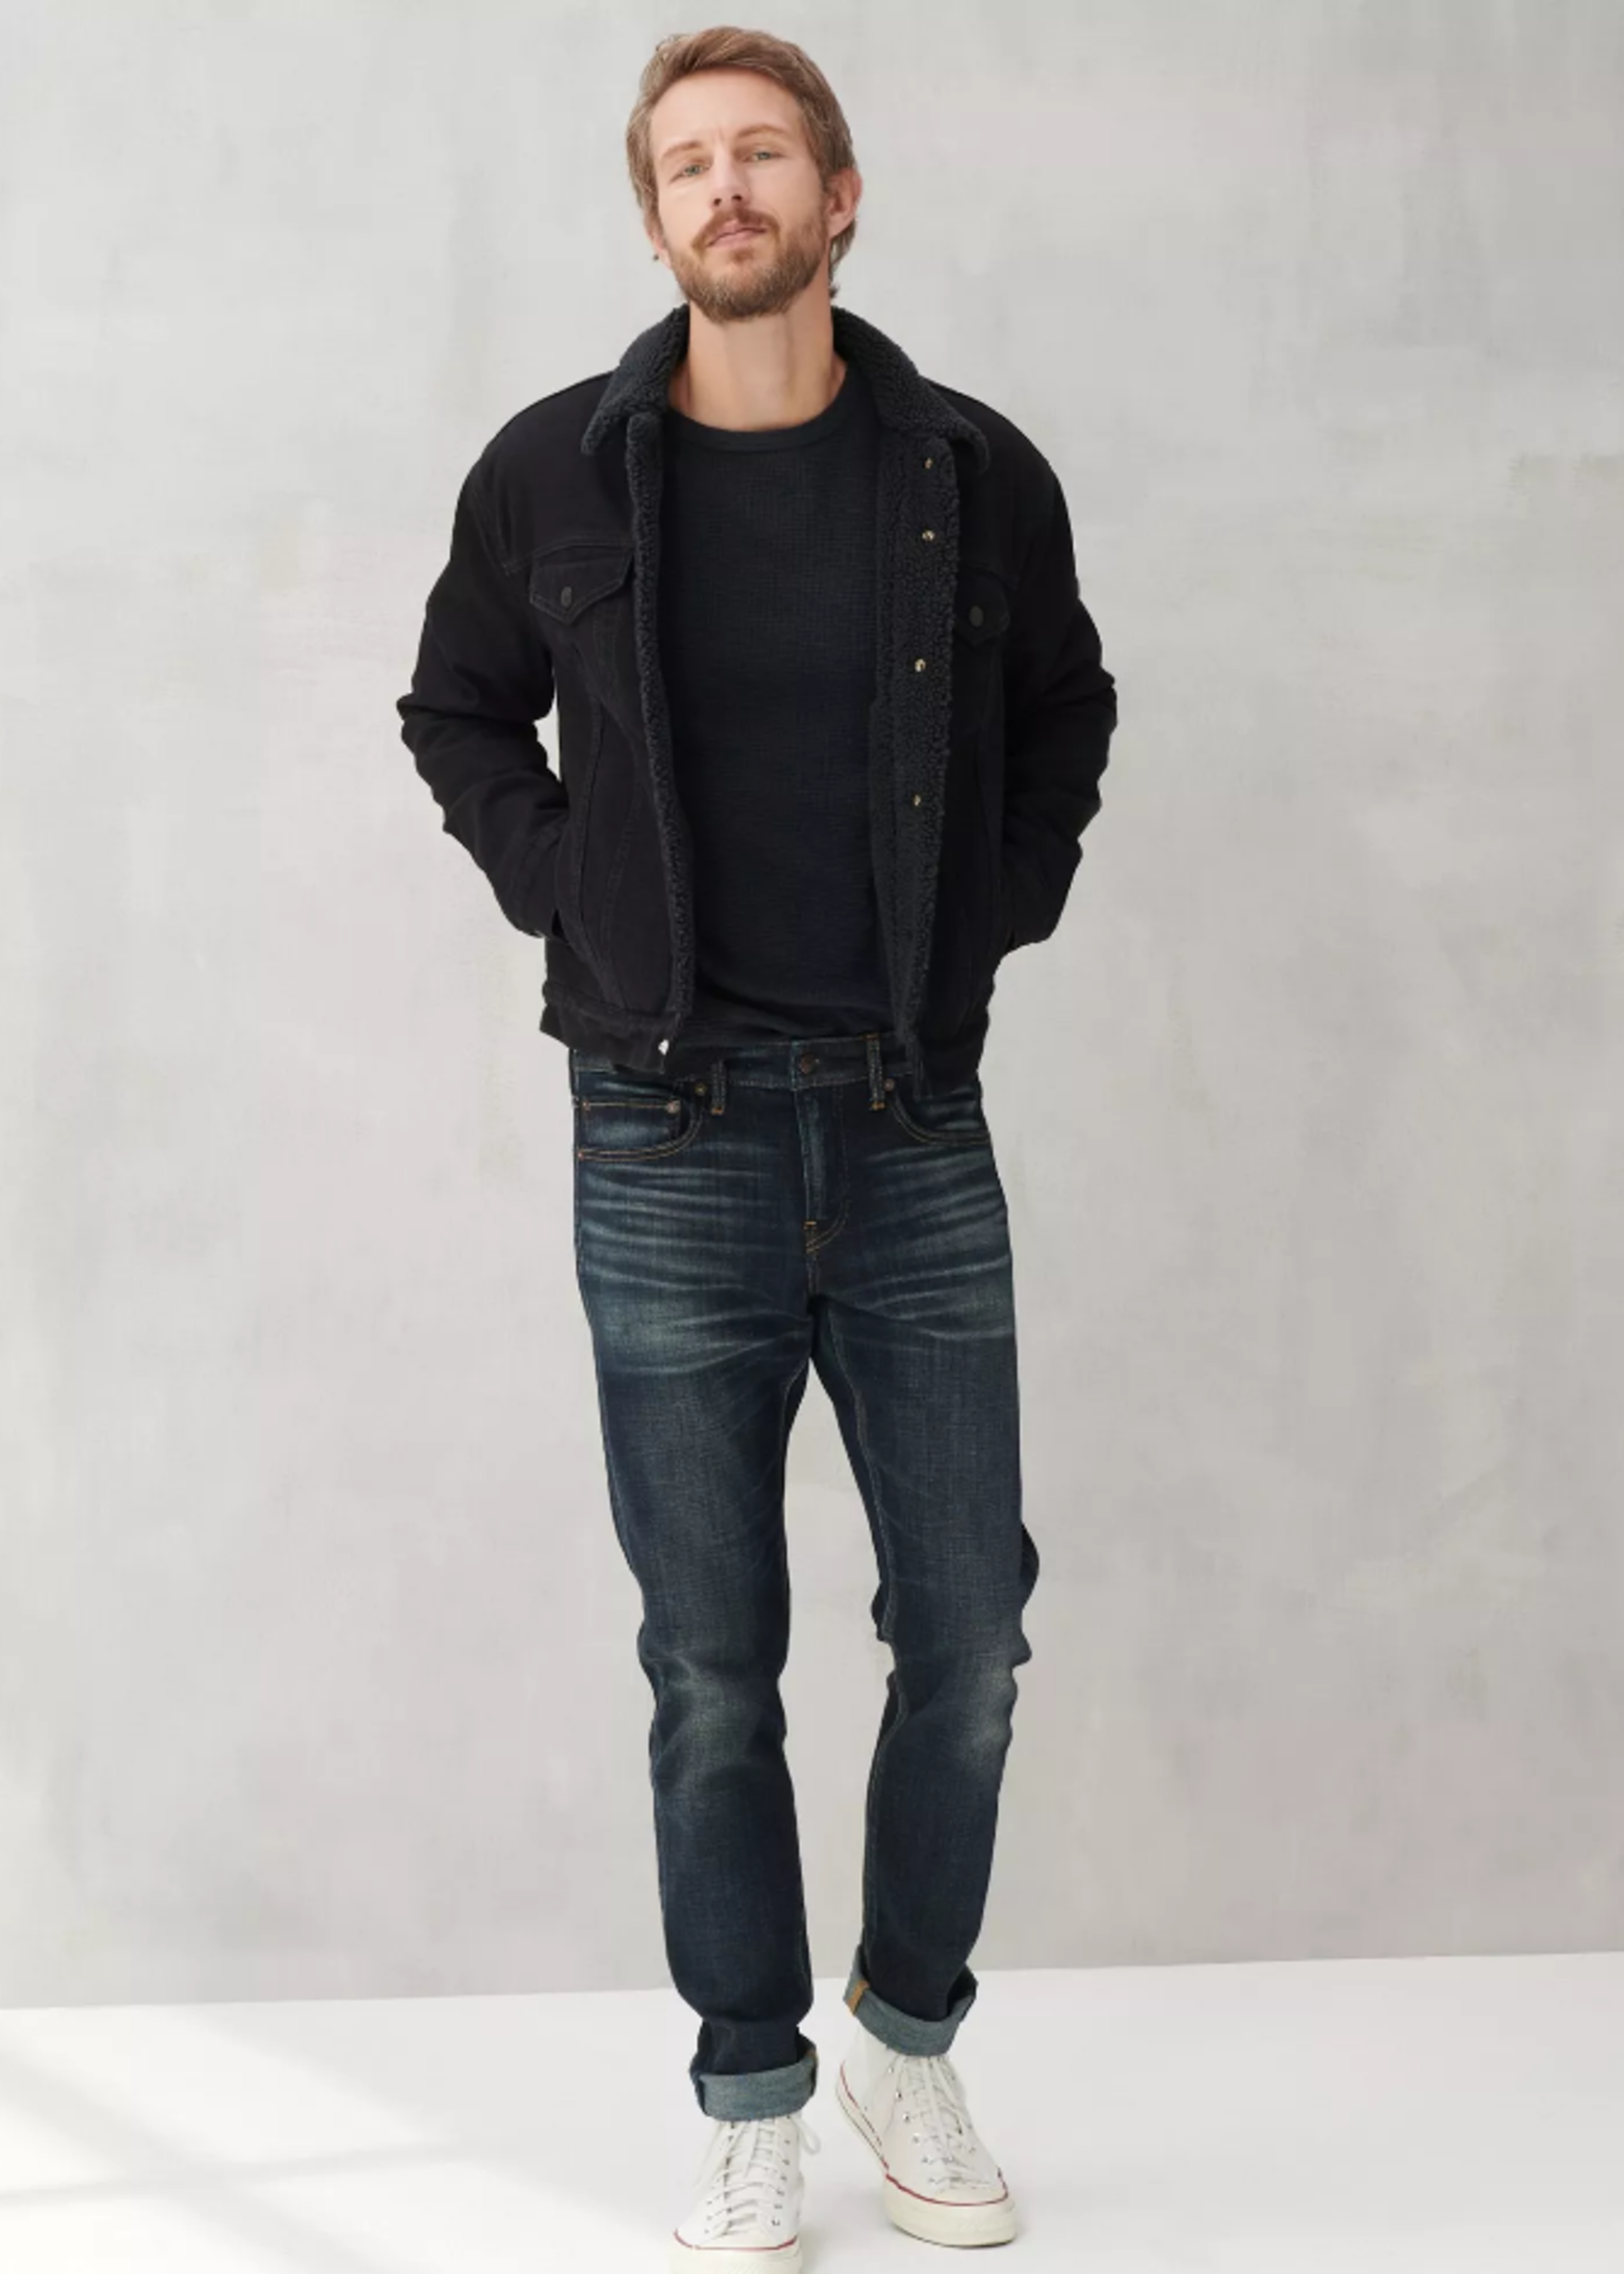 Lucky Brand Thermal Crew - Jet Black